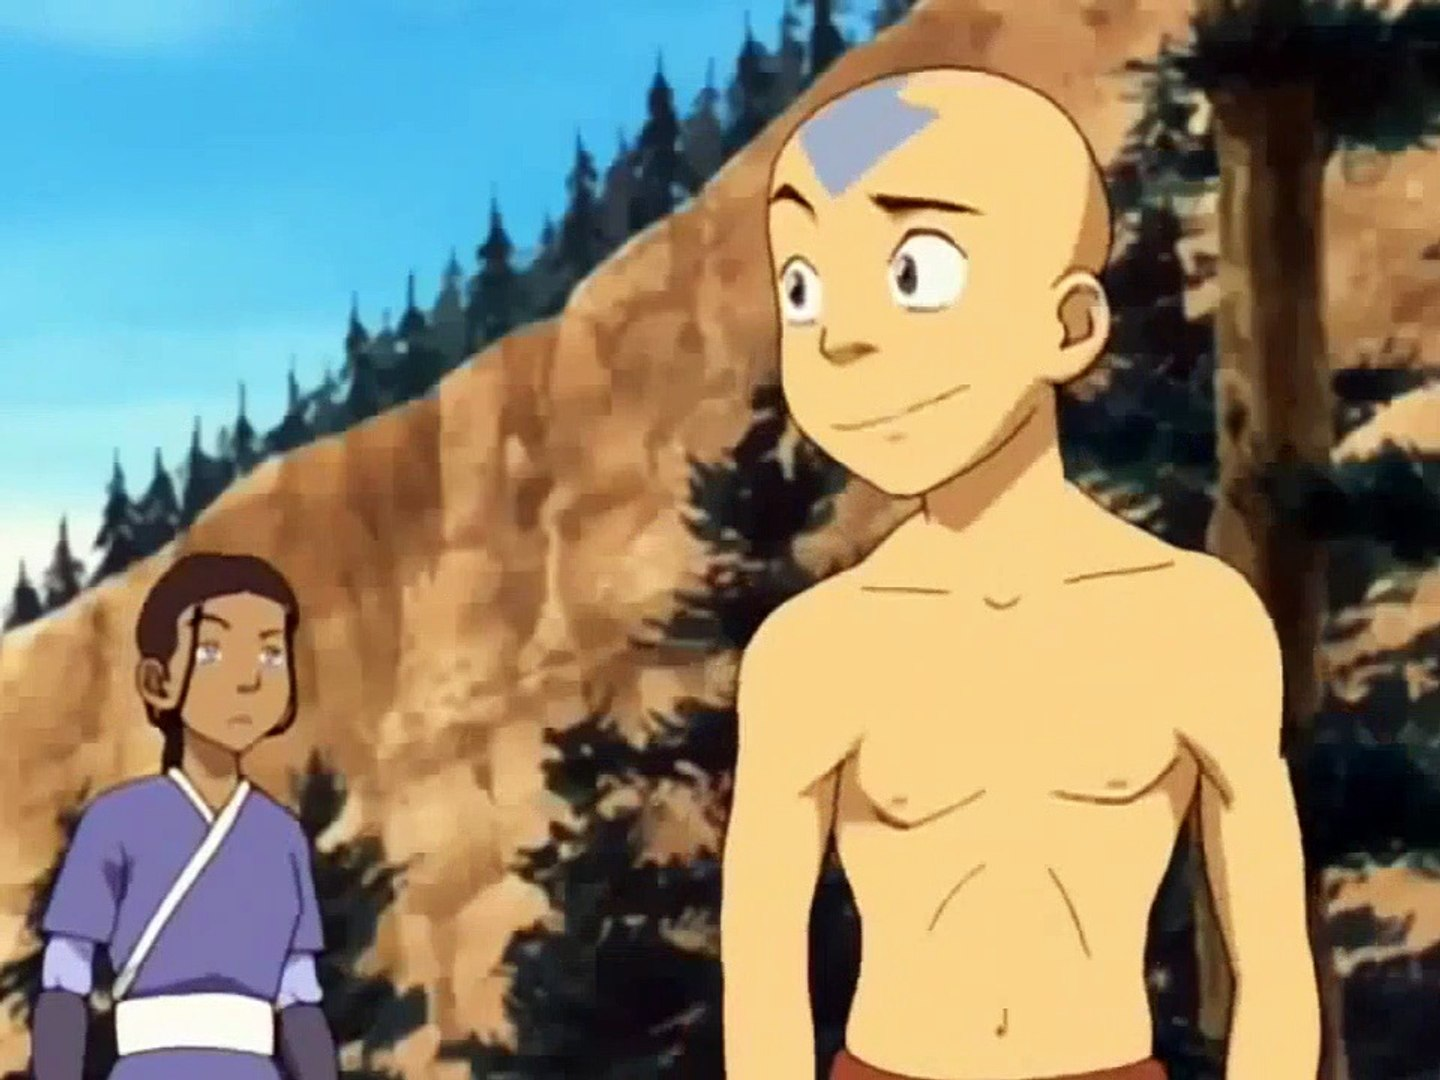 Avatar The Last Airbender S01E09 - The Waterbending Scroll